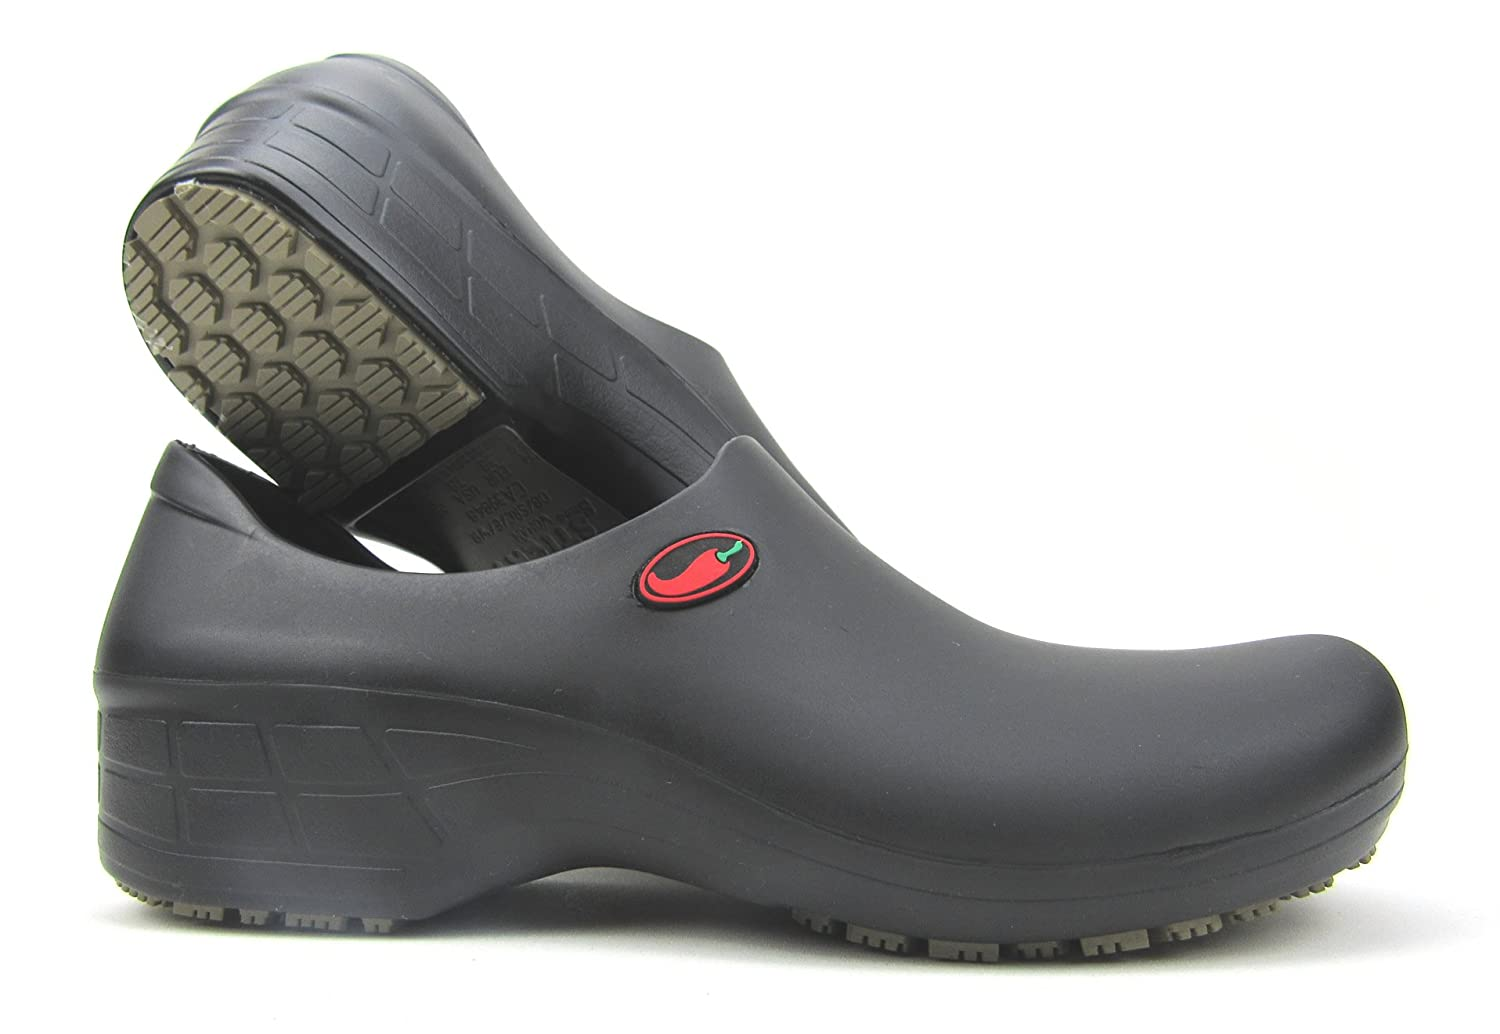 a516f4067a70e Amazon.com  Chef Shoes for Women - Slip Resistant - StickyPro Kitchen Shoes   Shoes